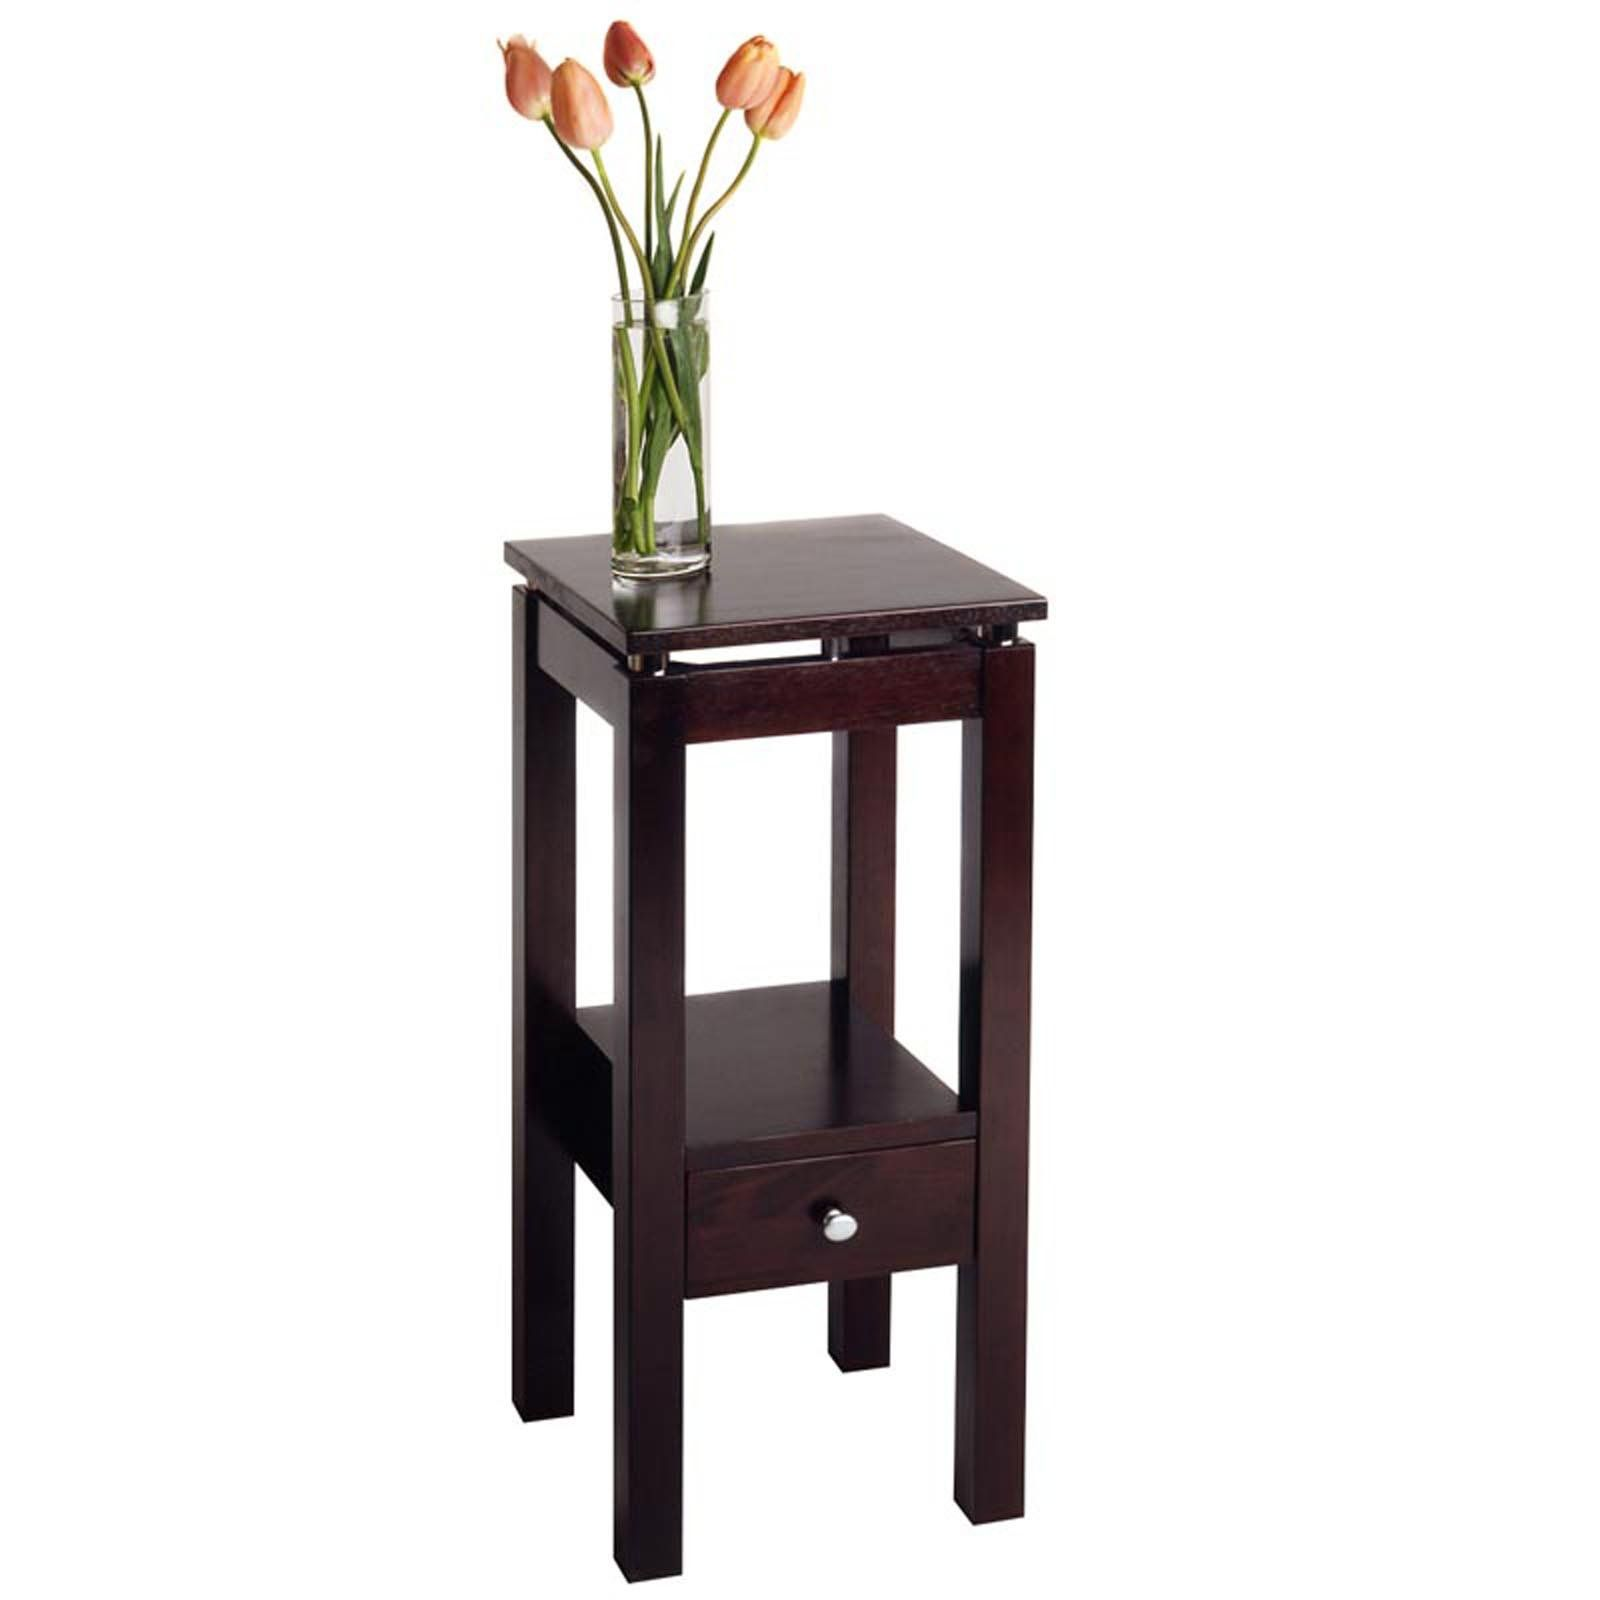 awesome round accent tables with beautiful flower winsome wood table person bar small tiffany lamps vanity unit basin wine rack kitchen scandinavian side brown leather chair black